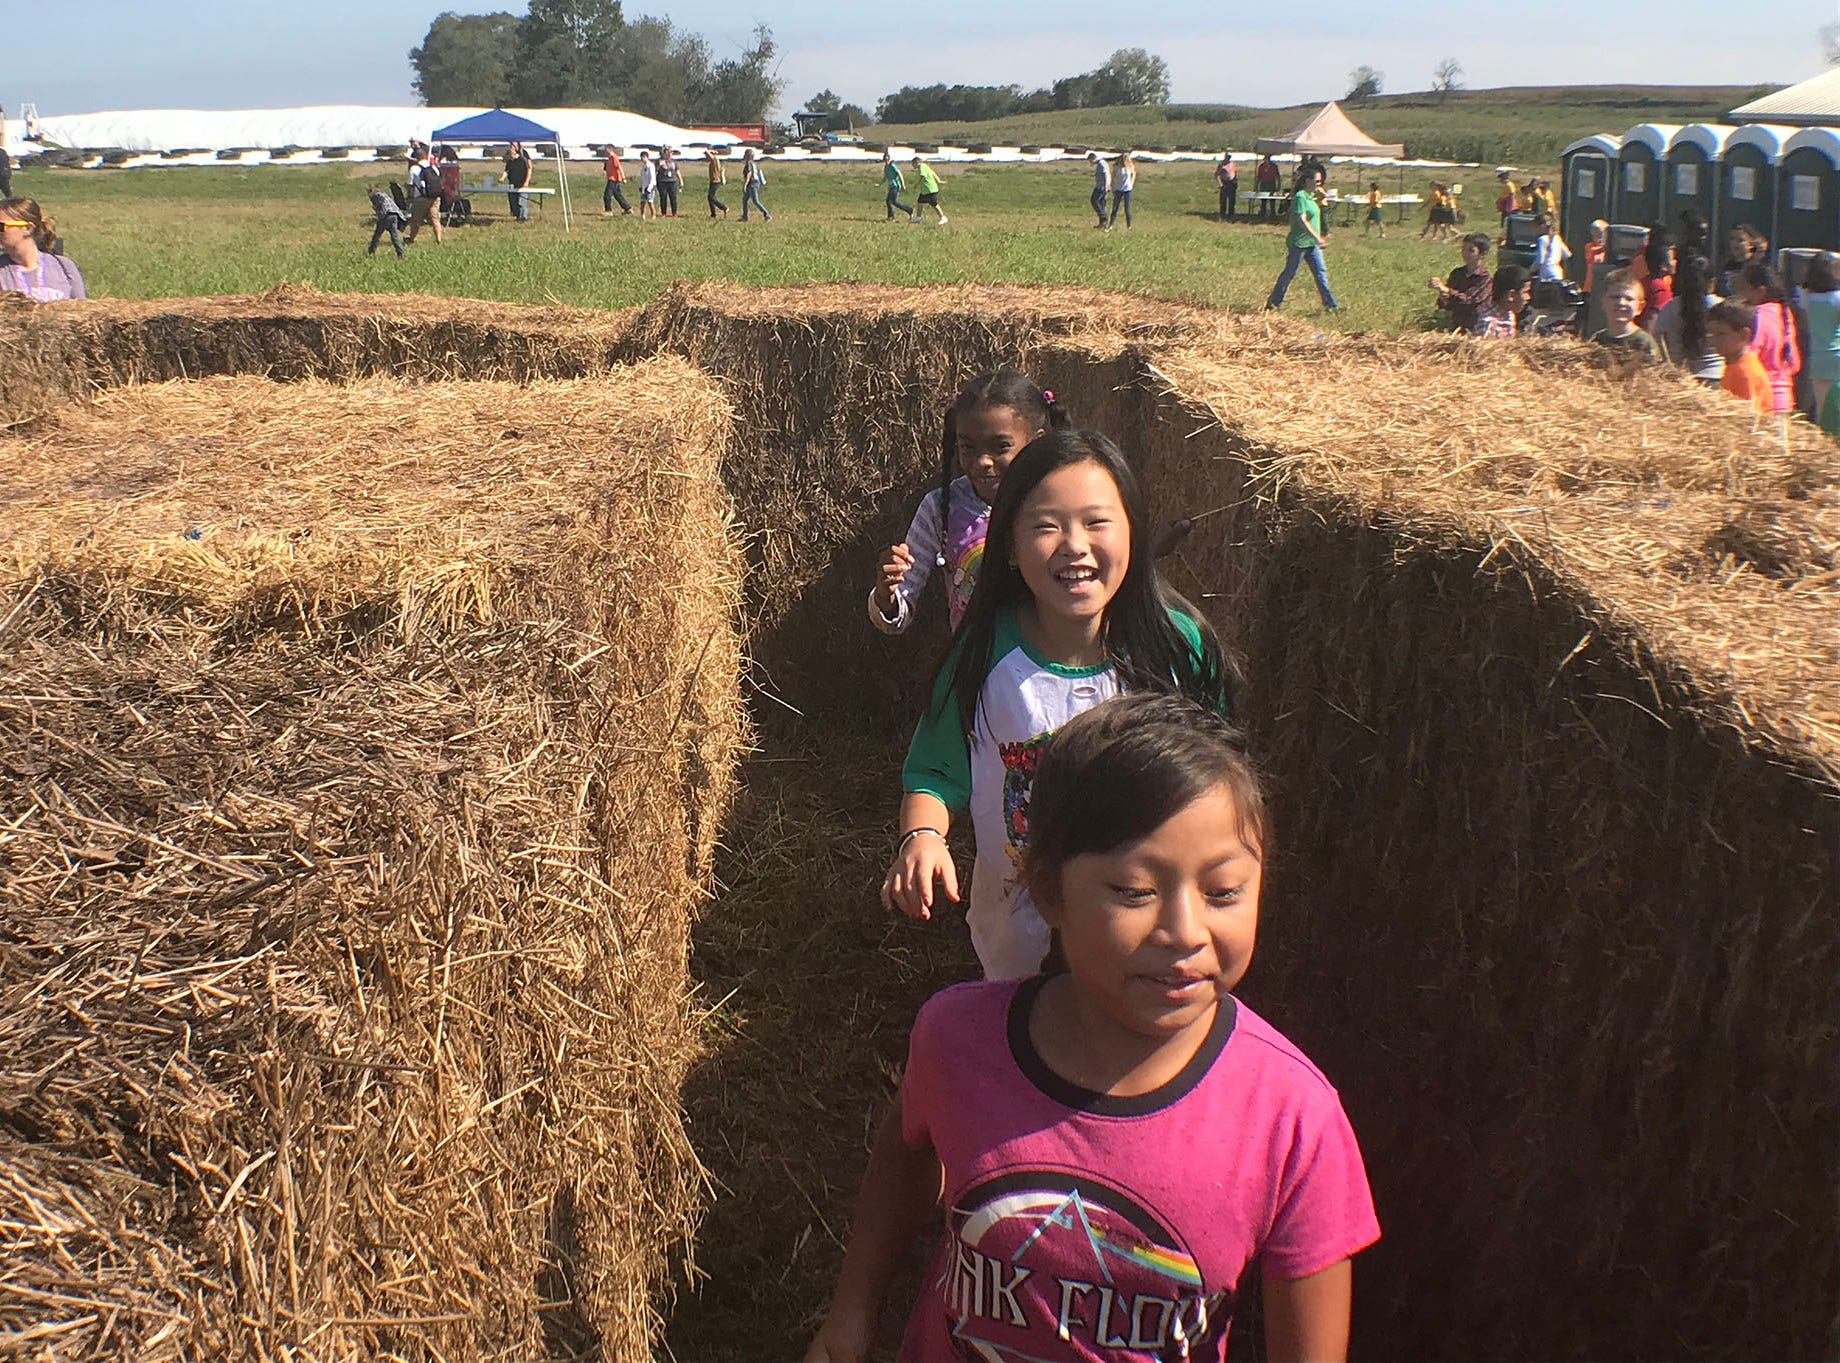 Students find their way out of the hay maze. Franklin County fourth-graders are visiting the Franklin Fall Farm Fun Fest, today.  The annual event is being hosted by a father-daughter dairy farming team, Musser Farm. The students' trip is hosted by the Agriculture Education Institute. The fest itself is hosted by the Franklin County Farm Bureau.